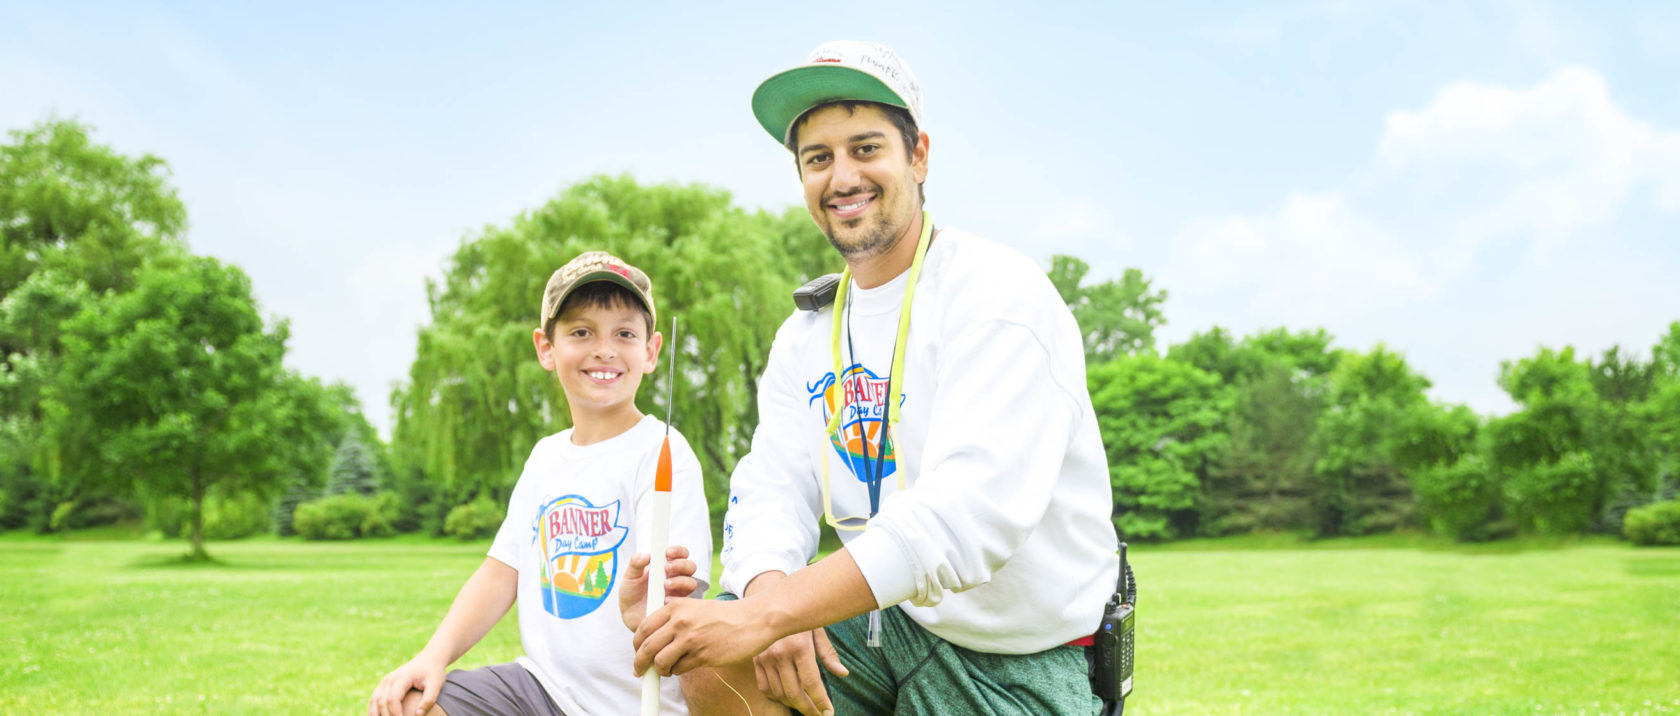 Male staff member helping a boy camper with a rocket launch